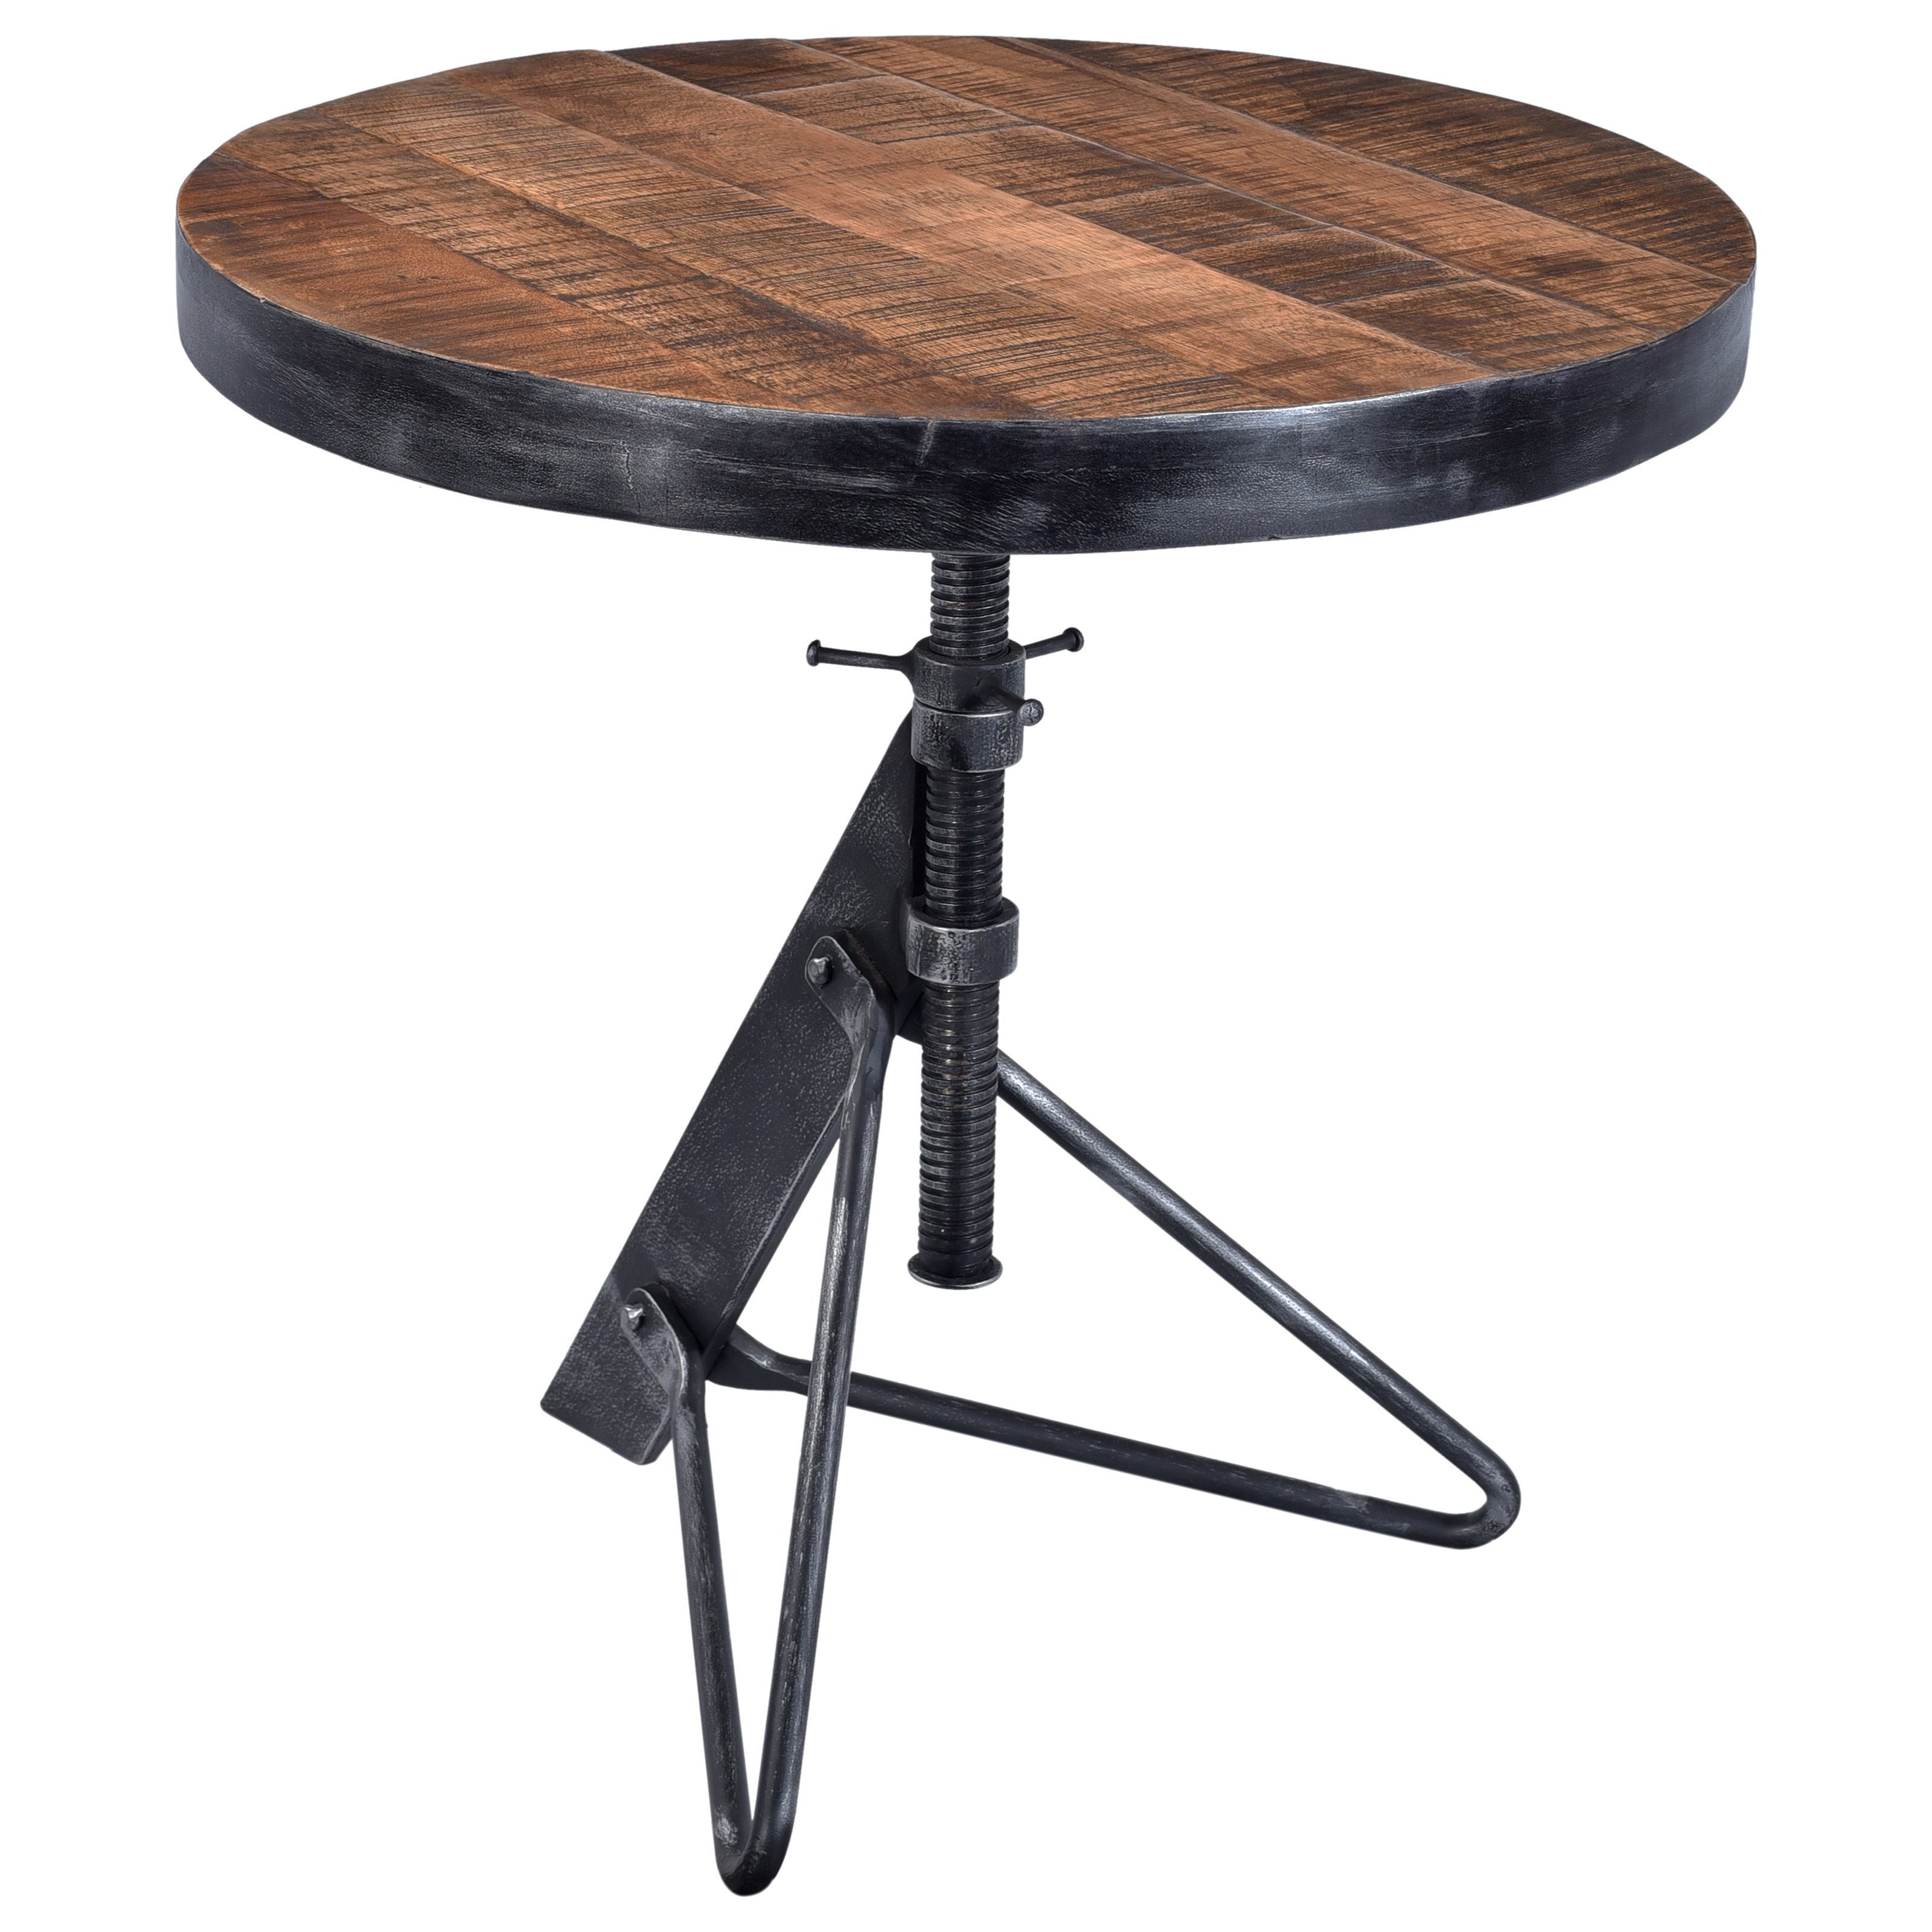 C2C Accents Adjustable Round Accent Table by C2C at Walker's Furniture